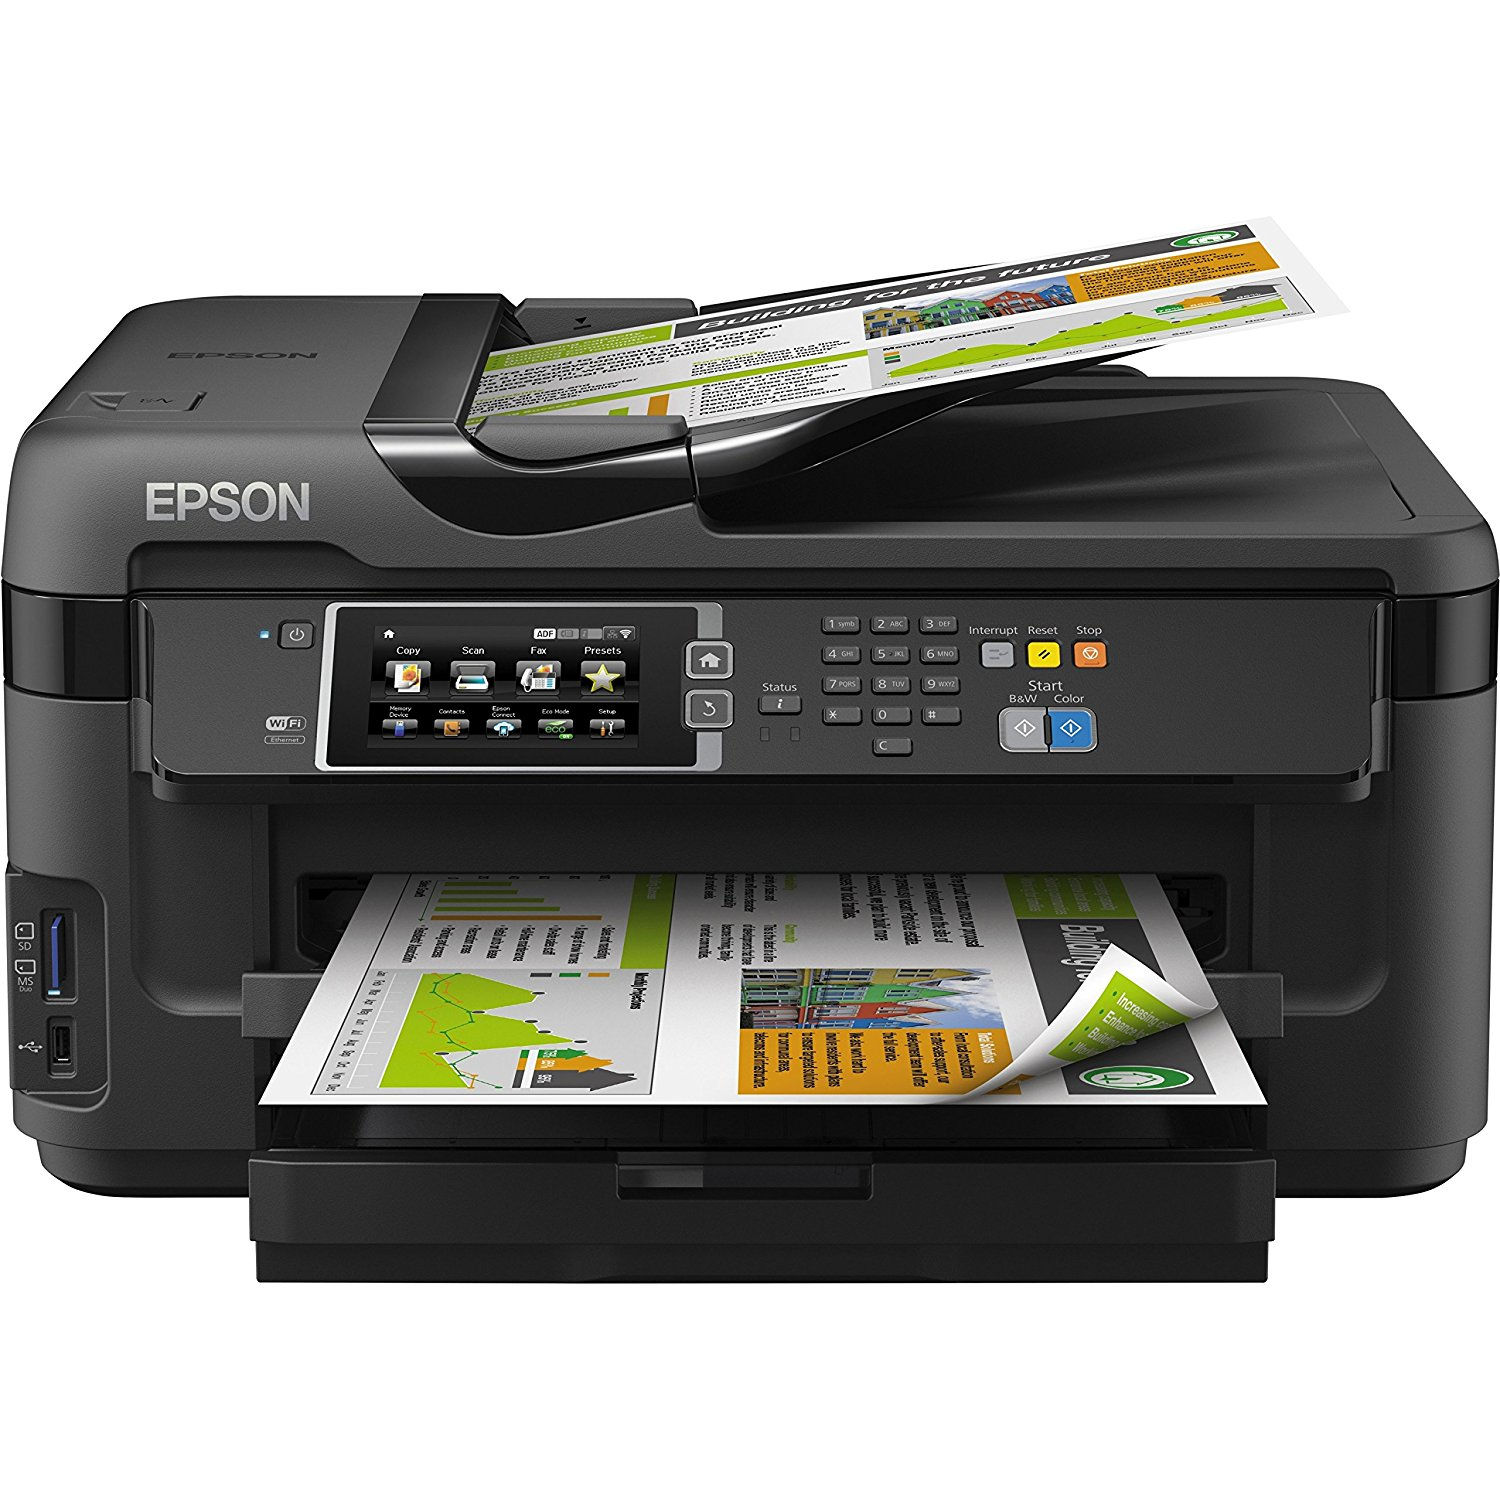 Epson Workforce All-in-One Office Printer – Inkjet, Wireless